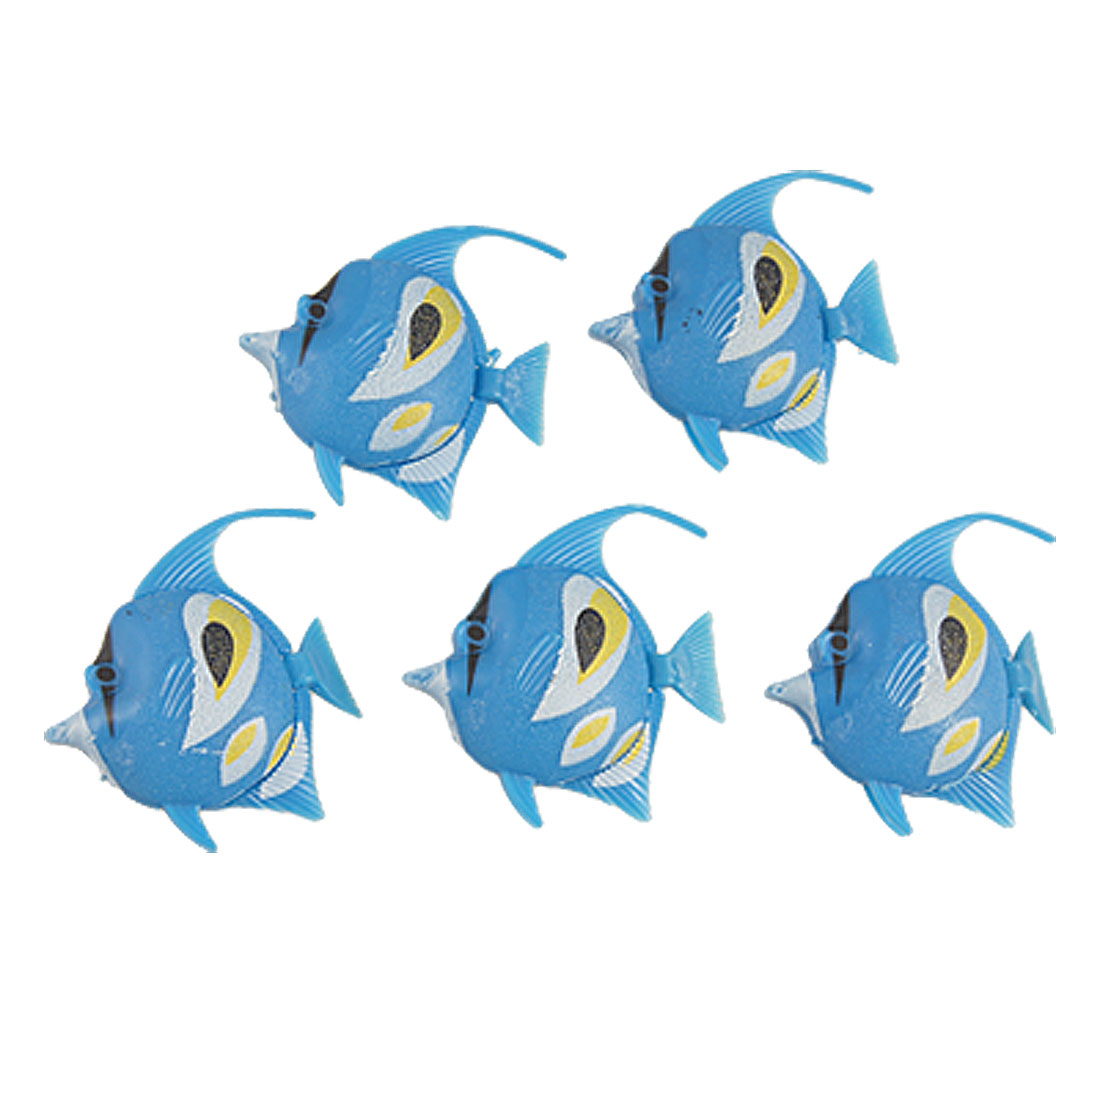 10 Pcs Artificial Blue Tail Plastic Floating Fish Ornament for Aquarium